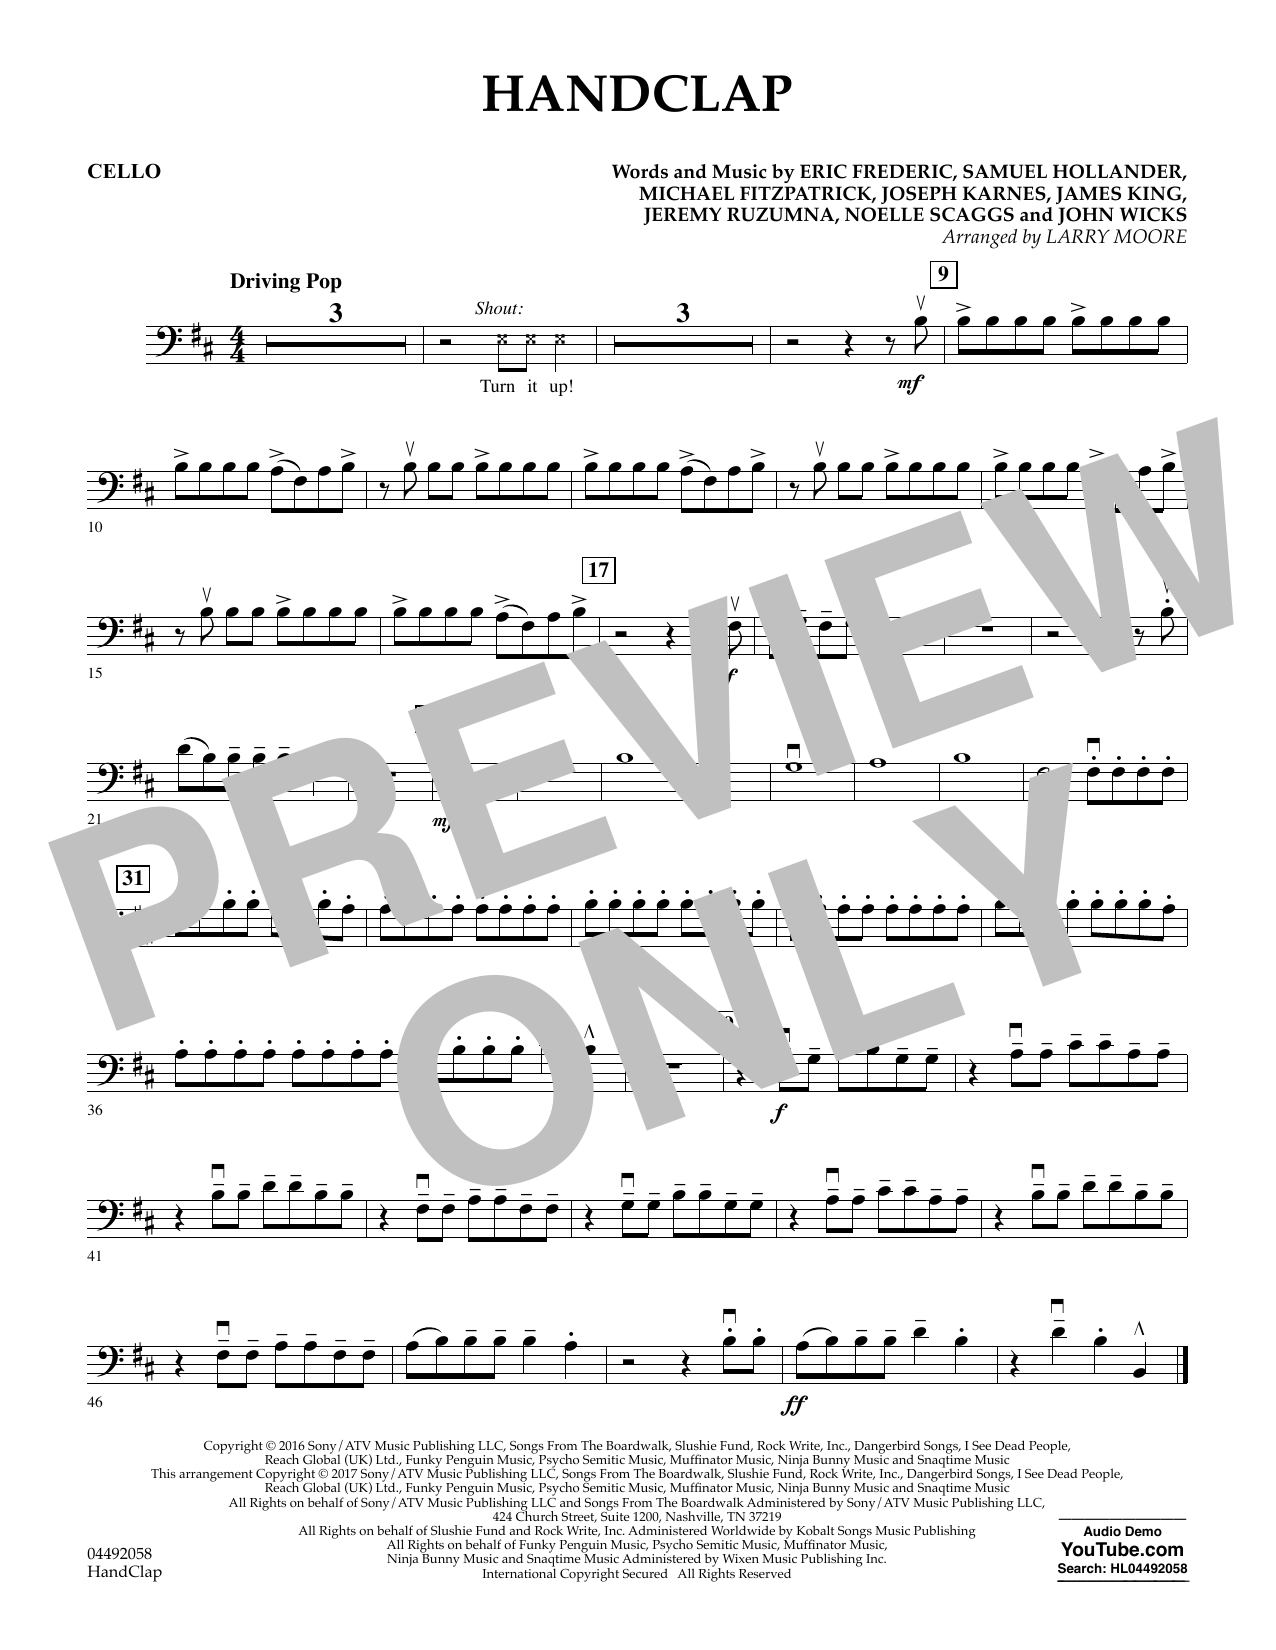 Larry Moore HandClap - Cello sheet music notes and chords. Download Printable PDF.